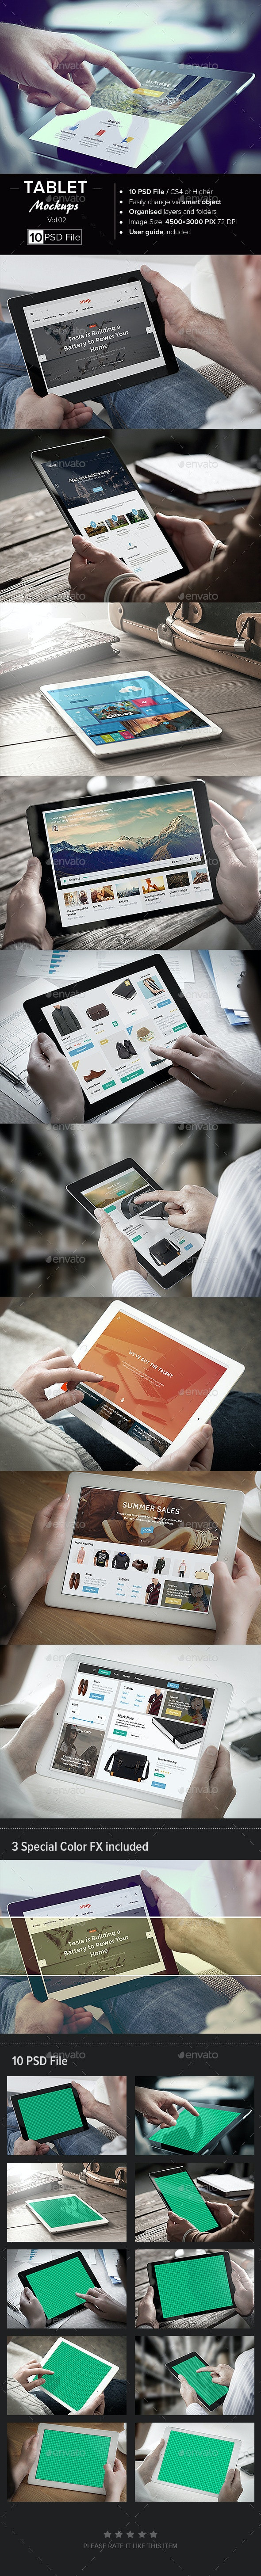 Tablet Mock-Up /Vol. 02 - Mobile Displays